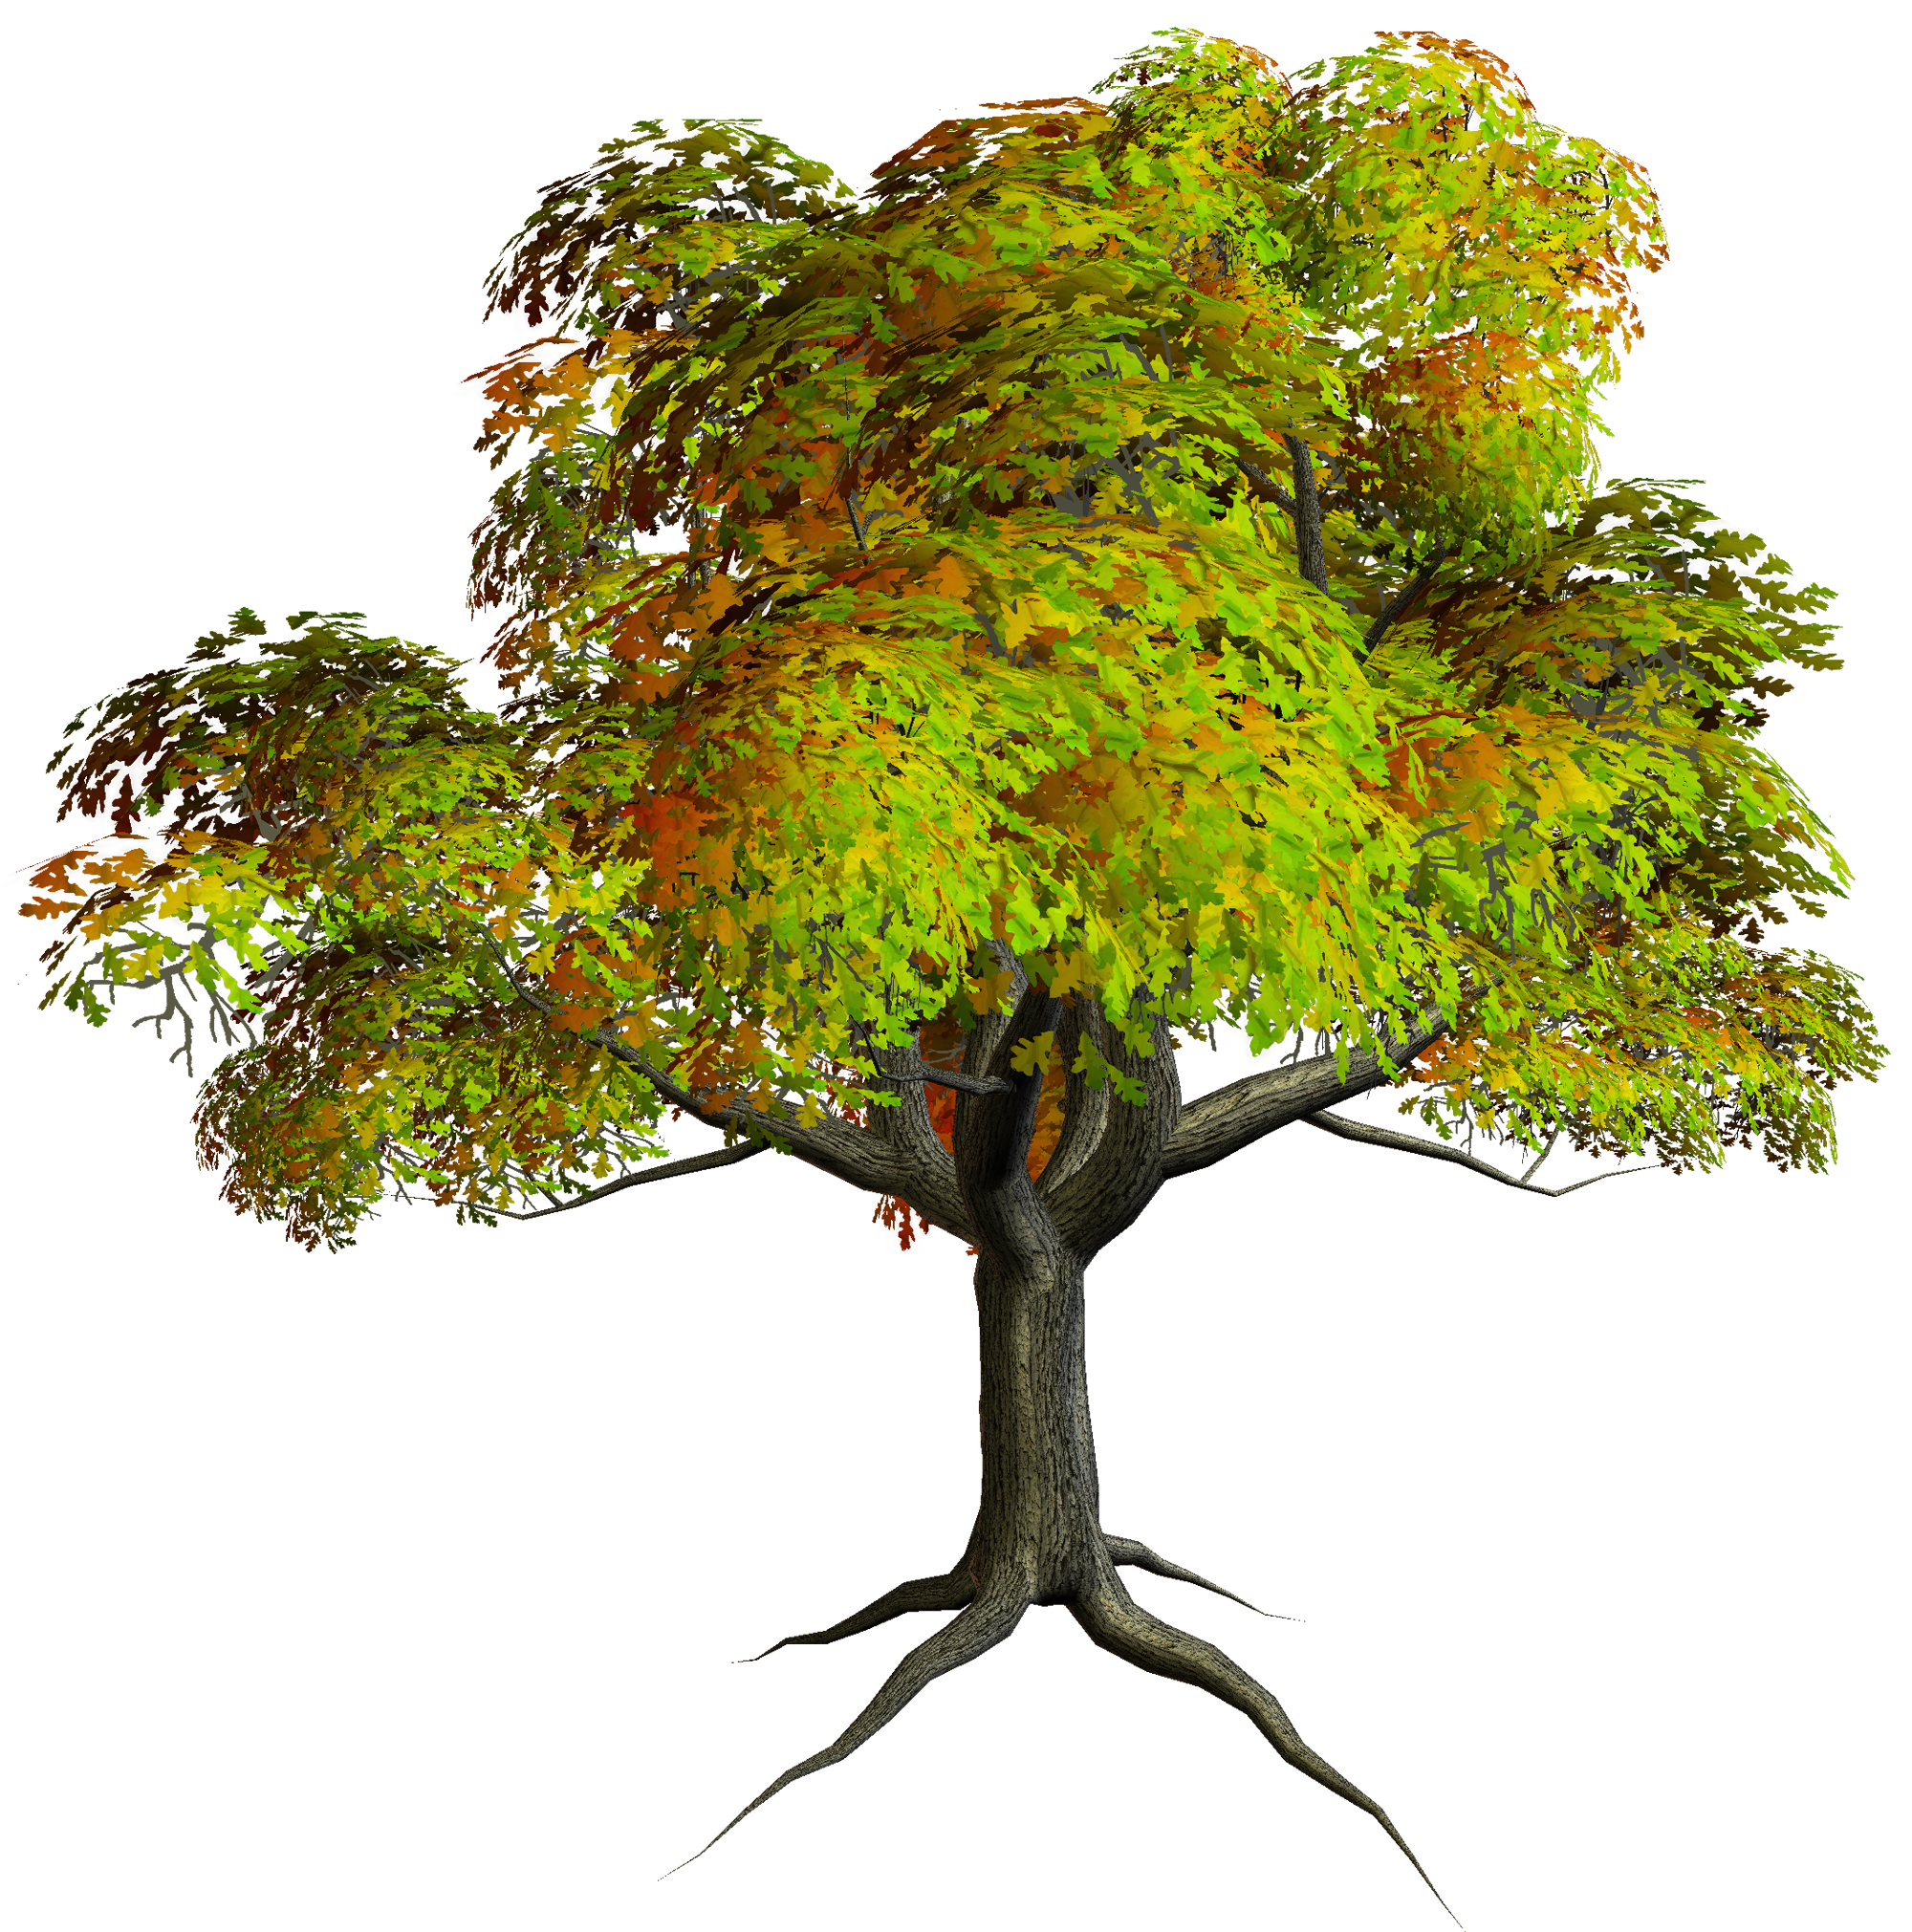 Free Tree Images Free, Download Free Clip Art, Free Clip Art on.